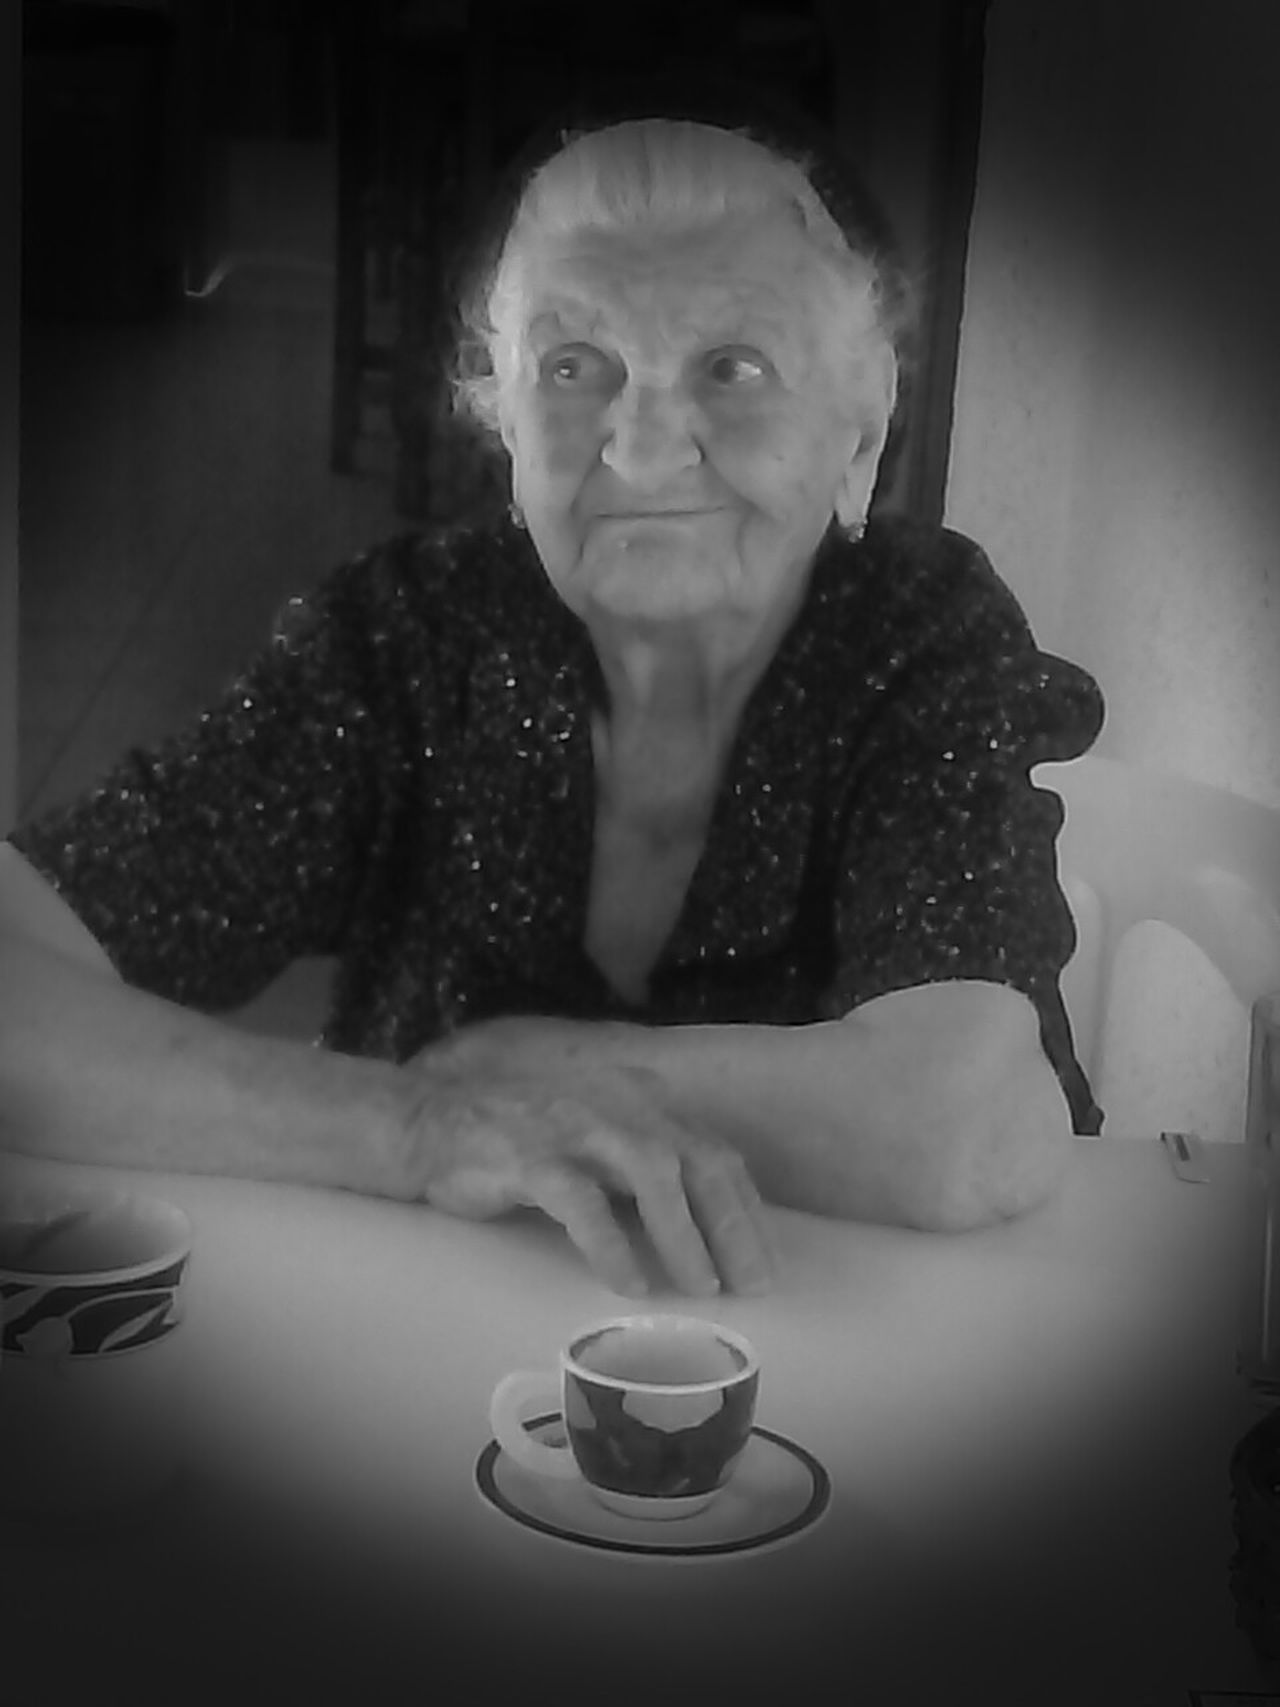 "Old But Awesome . A CENTURY + 3. Yiayia. ""Strong Likel Bull"". People Old-fashioned Kastania, Greece Women And Coffee In The Village The Old Country Grandmother Yaya <3 Lifestyles Old But Awesome"